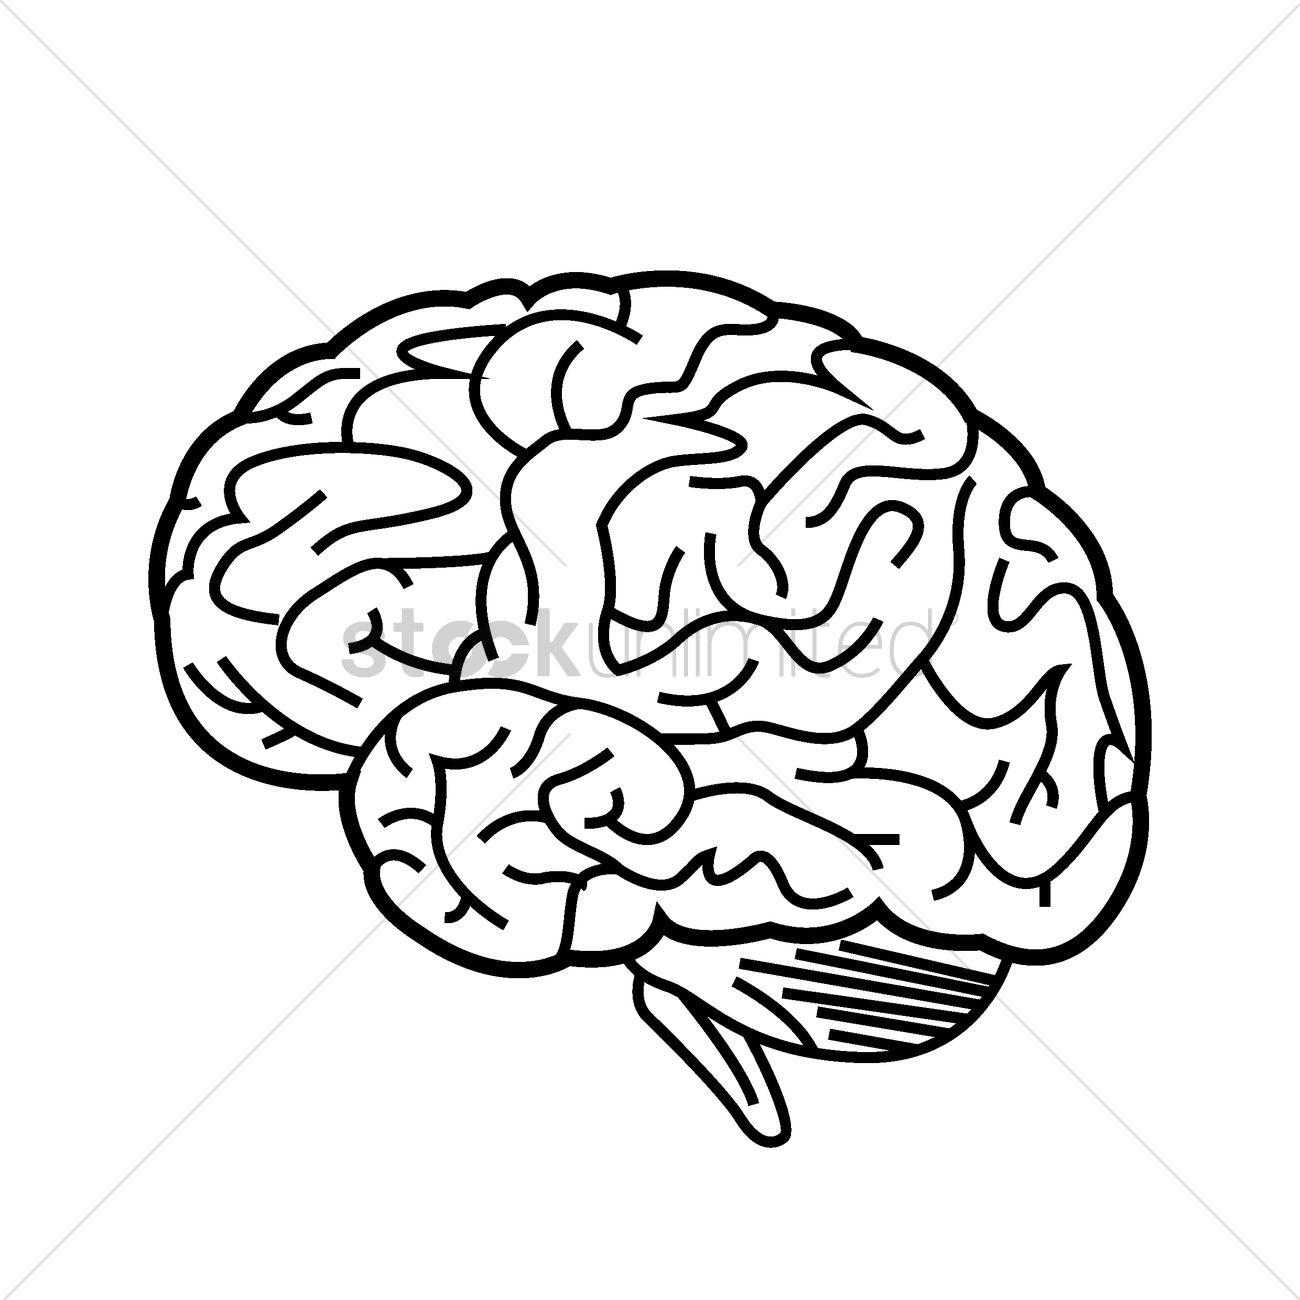 human brain vector image 1523028 stockunlimited rh stockunlimited com brain free vector icon brain free vector icon